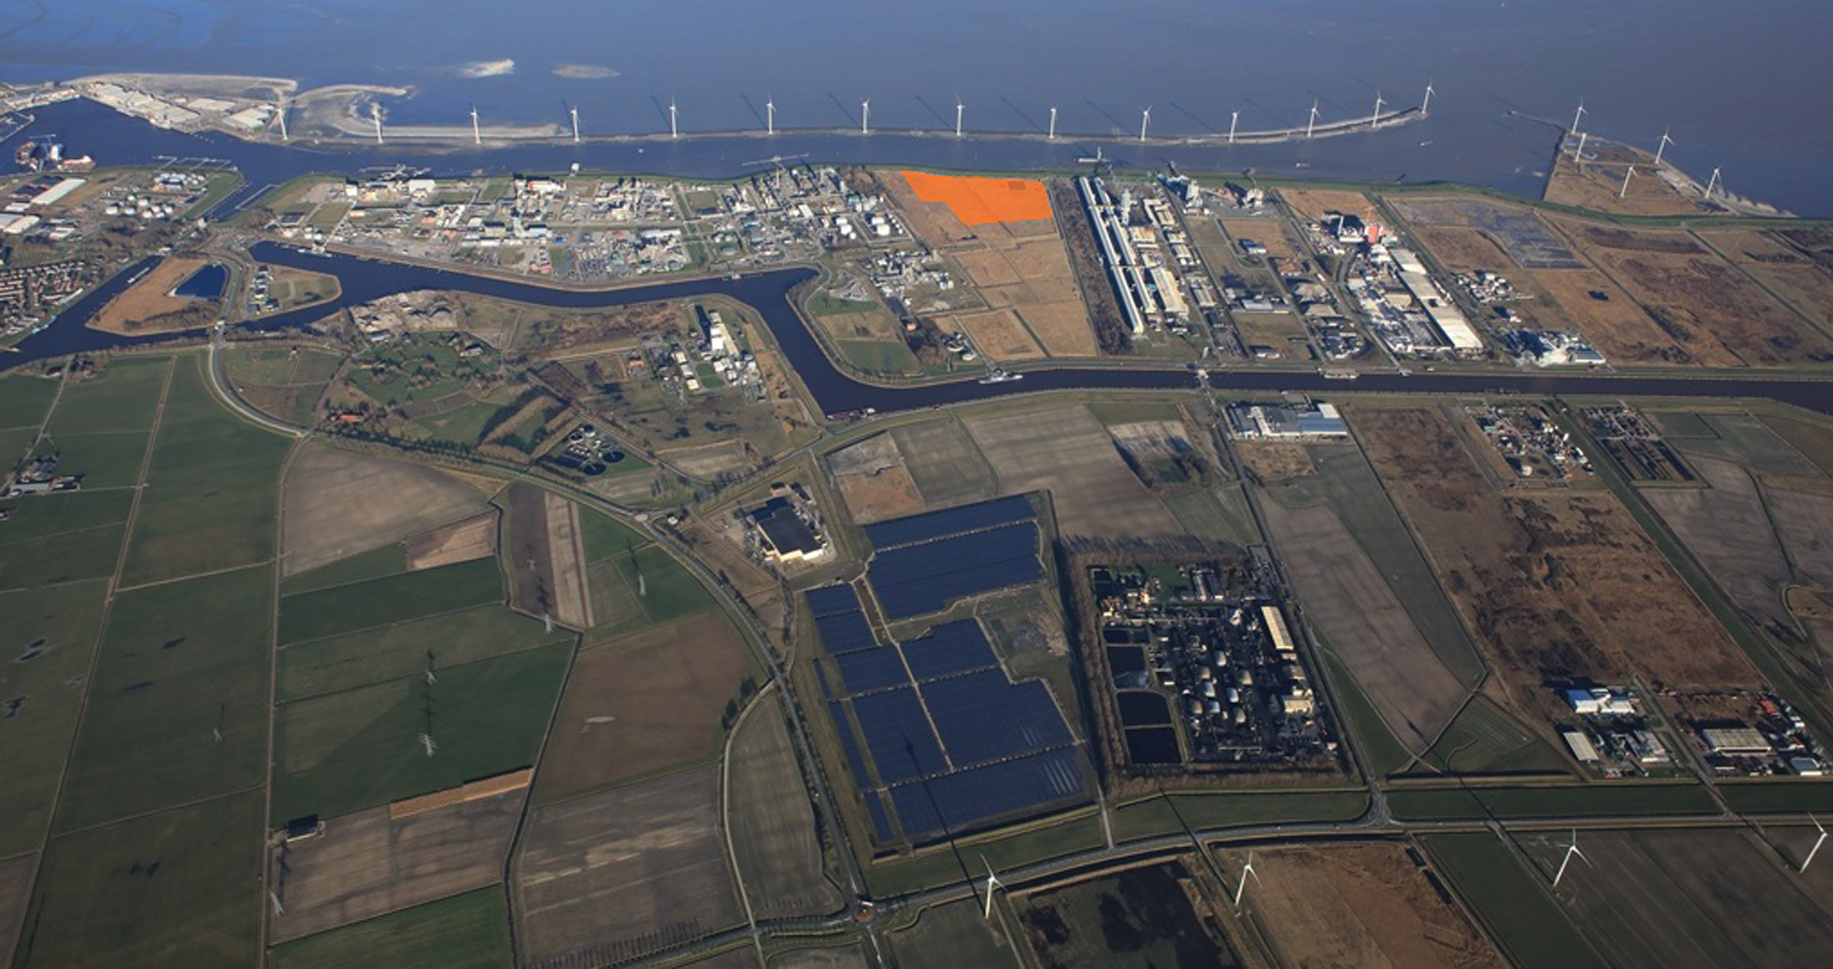 Helicopter view of Delfzijl, The Netherlands